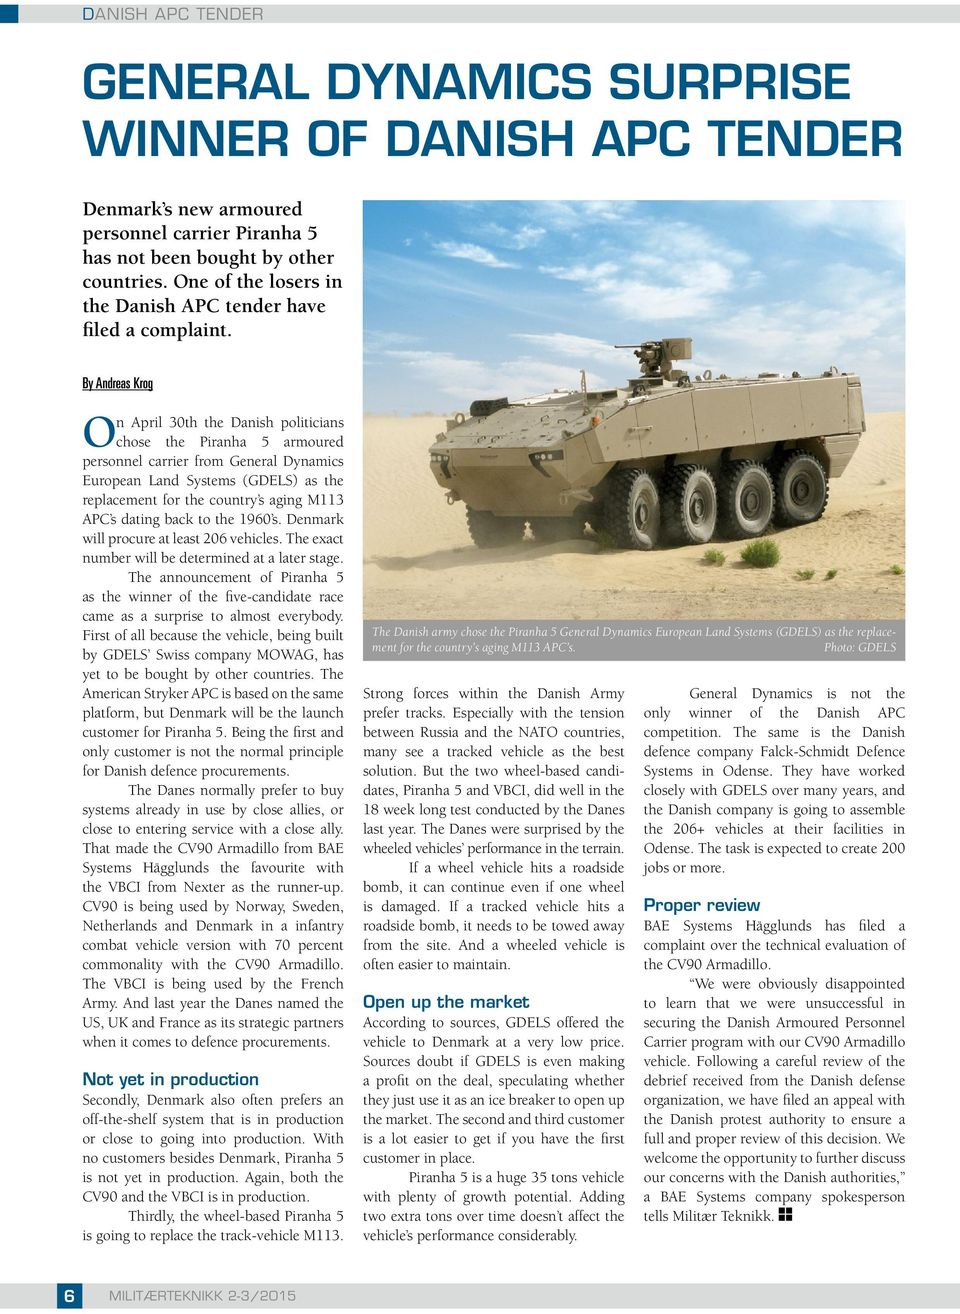 By Andreas Krog On April 30th the Danish politicians chose the Piranha 5 armoured personnel carrier from General Dynamics European Land Systems (GDELS) as the replacement for the country s aging M113